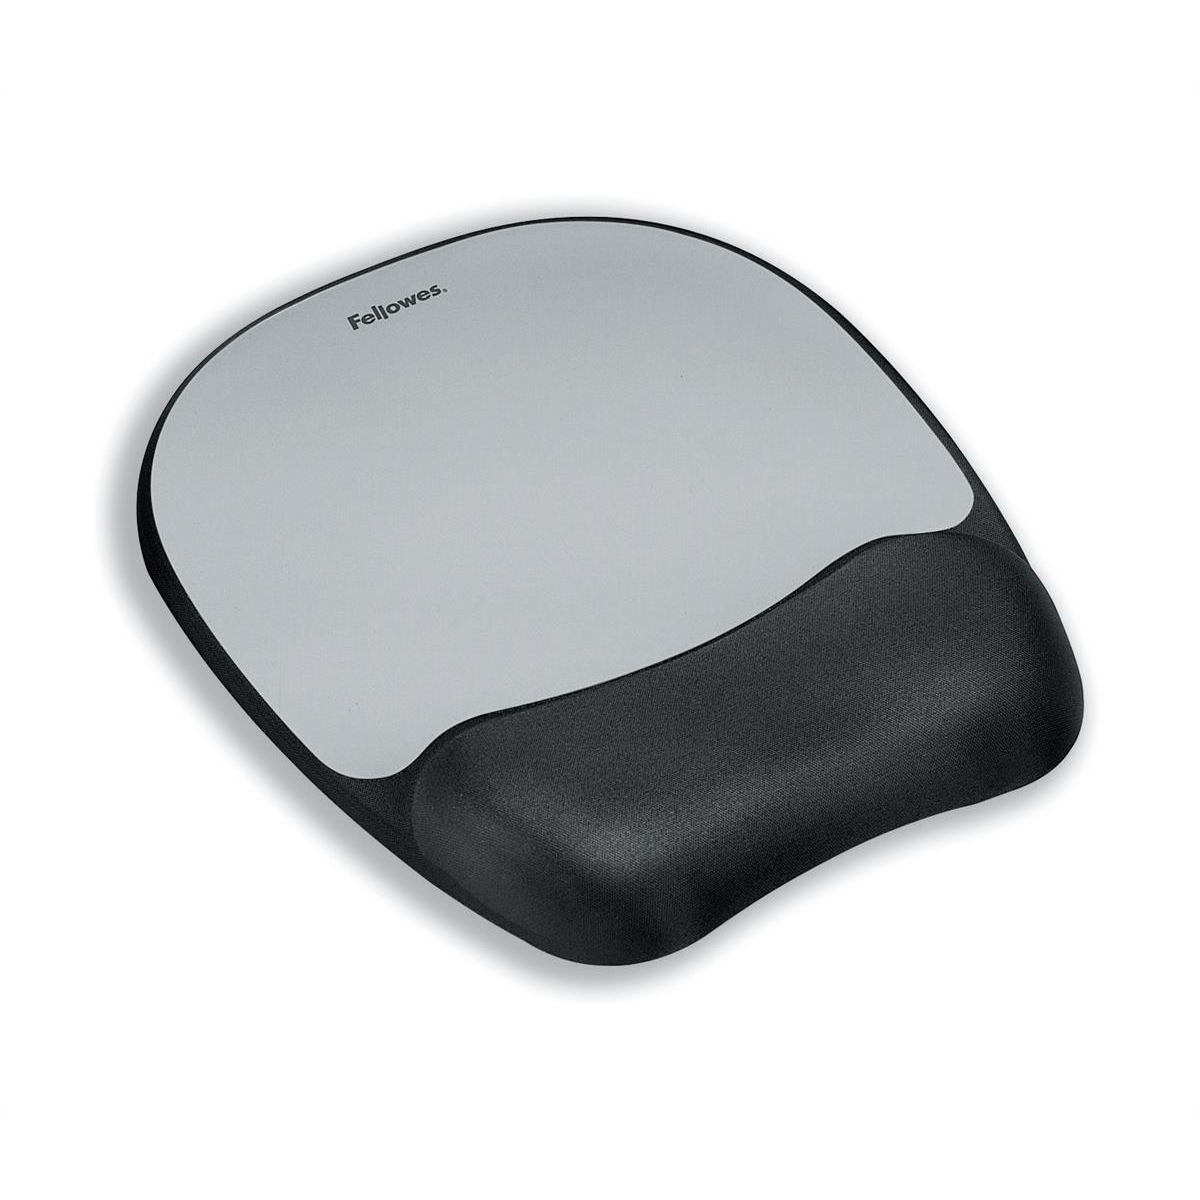 Fellowes Mousepad Non-skid Memory Foam Silver Ref 917580 [REDEMPTION] Jul-Sep19